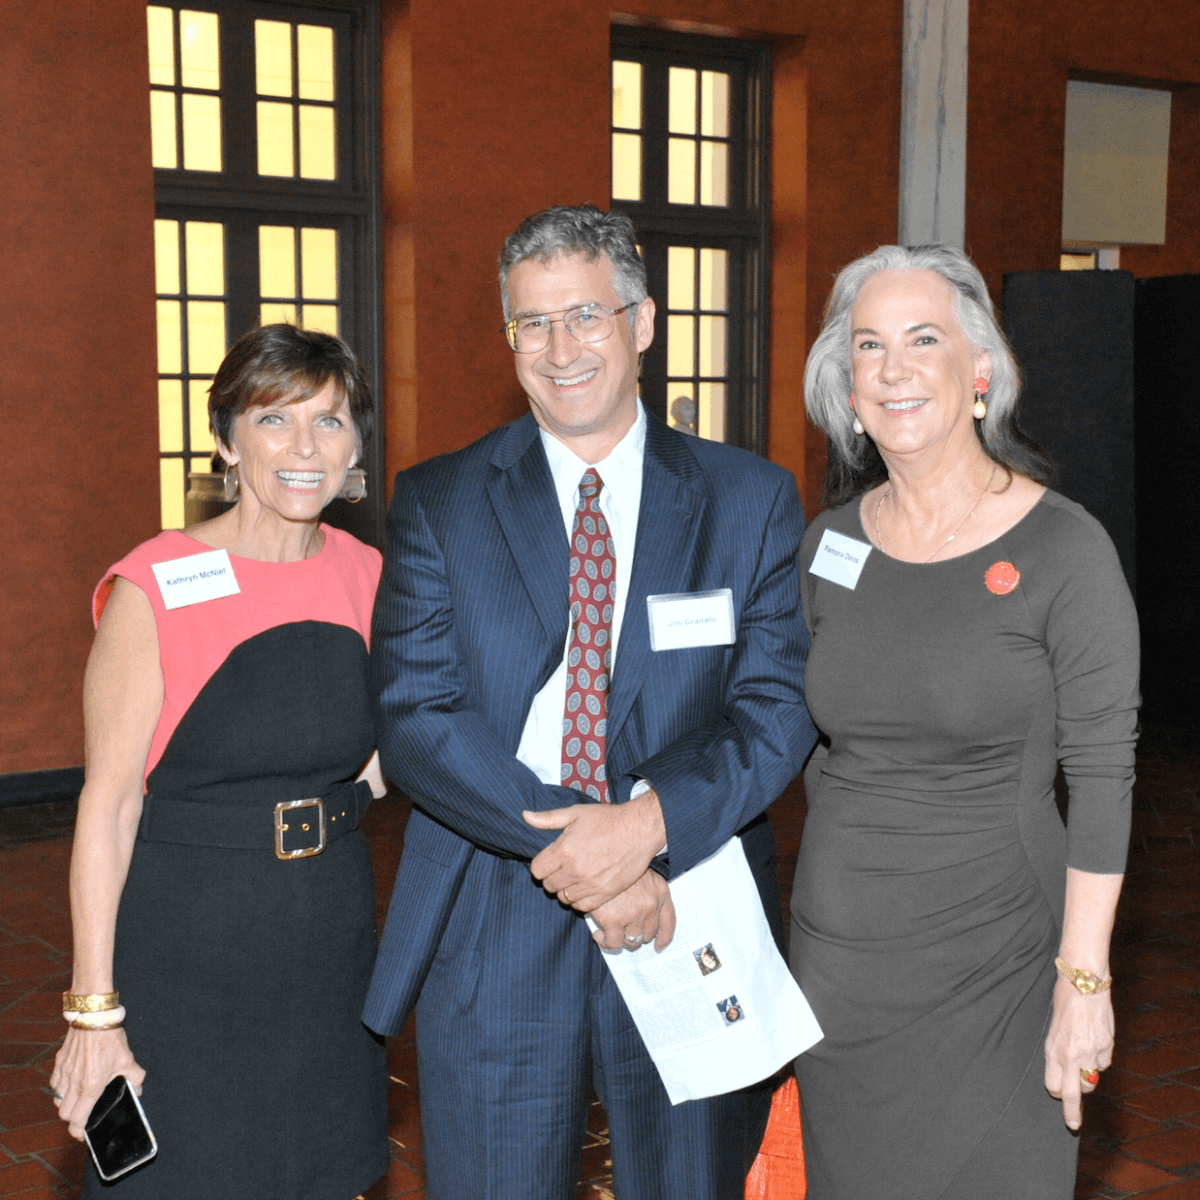 Kathryn McNiel, Jim Granato, Ramona Davis at Hobby Center for Public Policy lunch